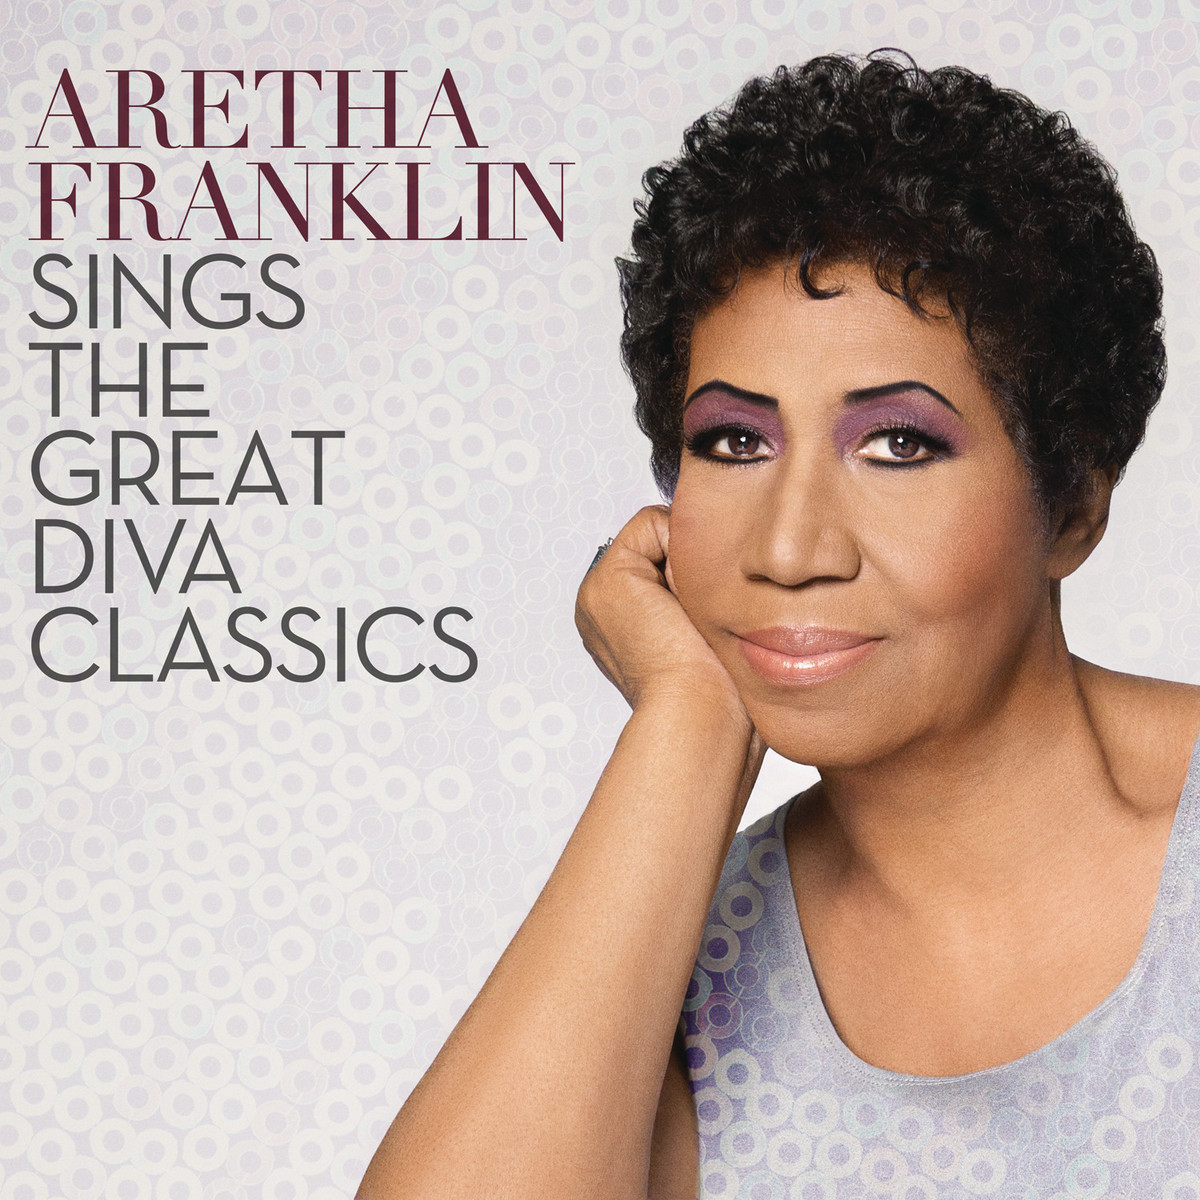 Aretha-Franklin-Sings-the-Greatest-Diva-Classics